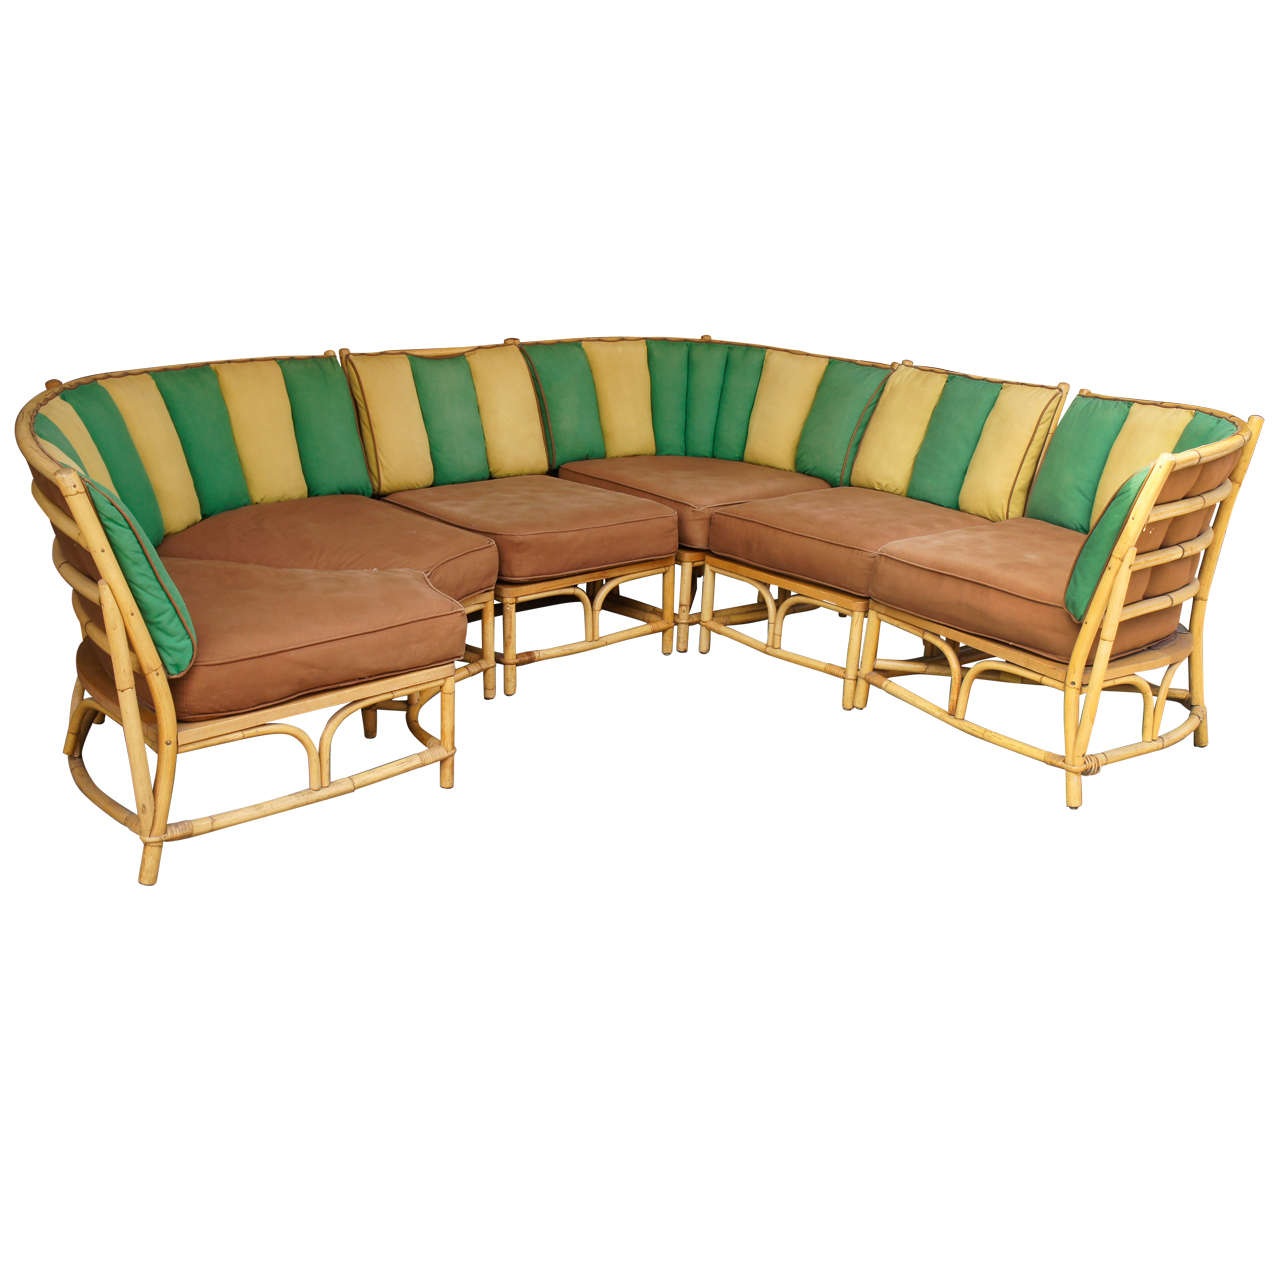 Design Bamboo Couch sectional bamboo sofa by ficks reed at 1stdibs 1